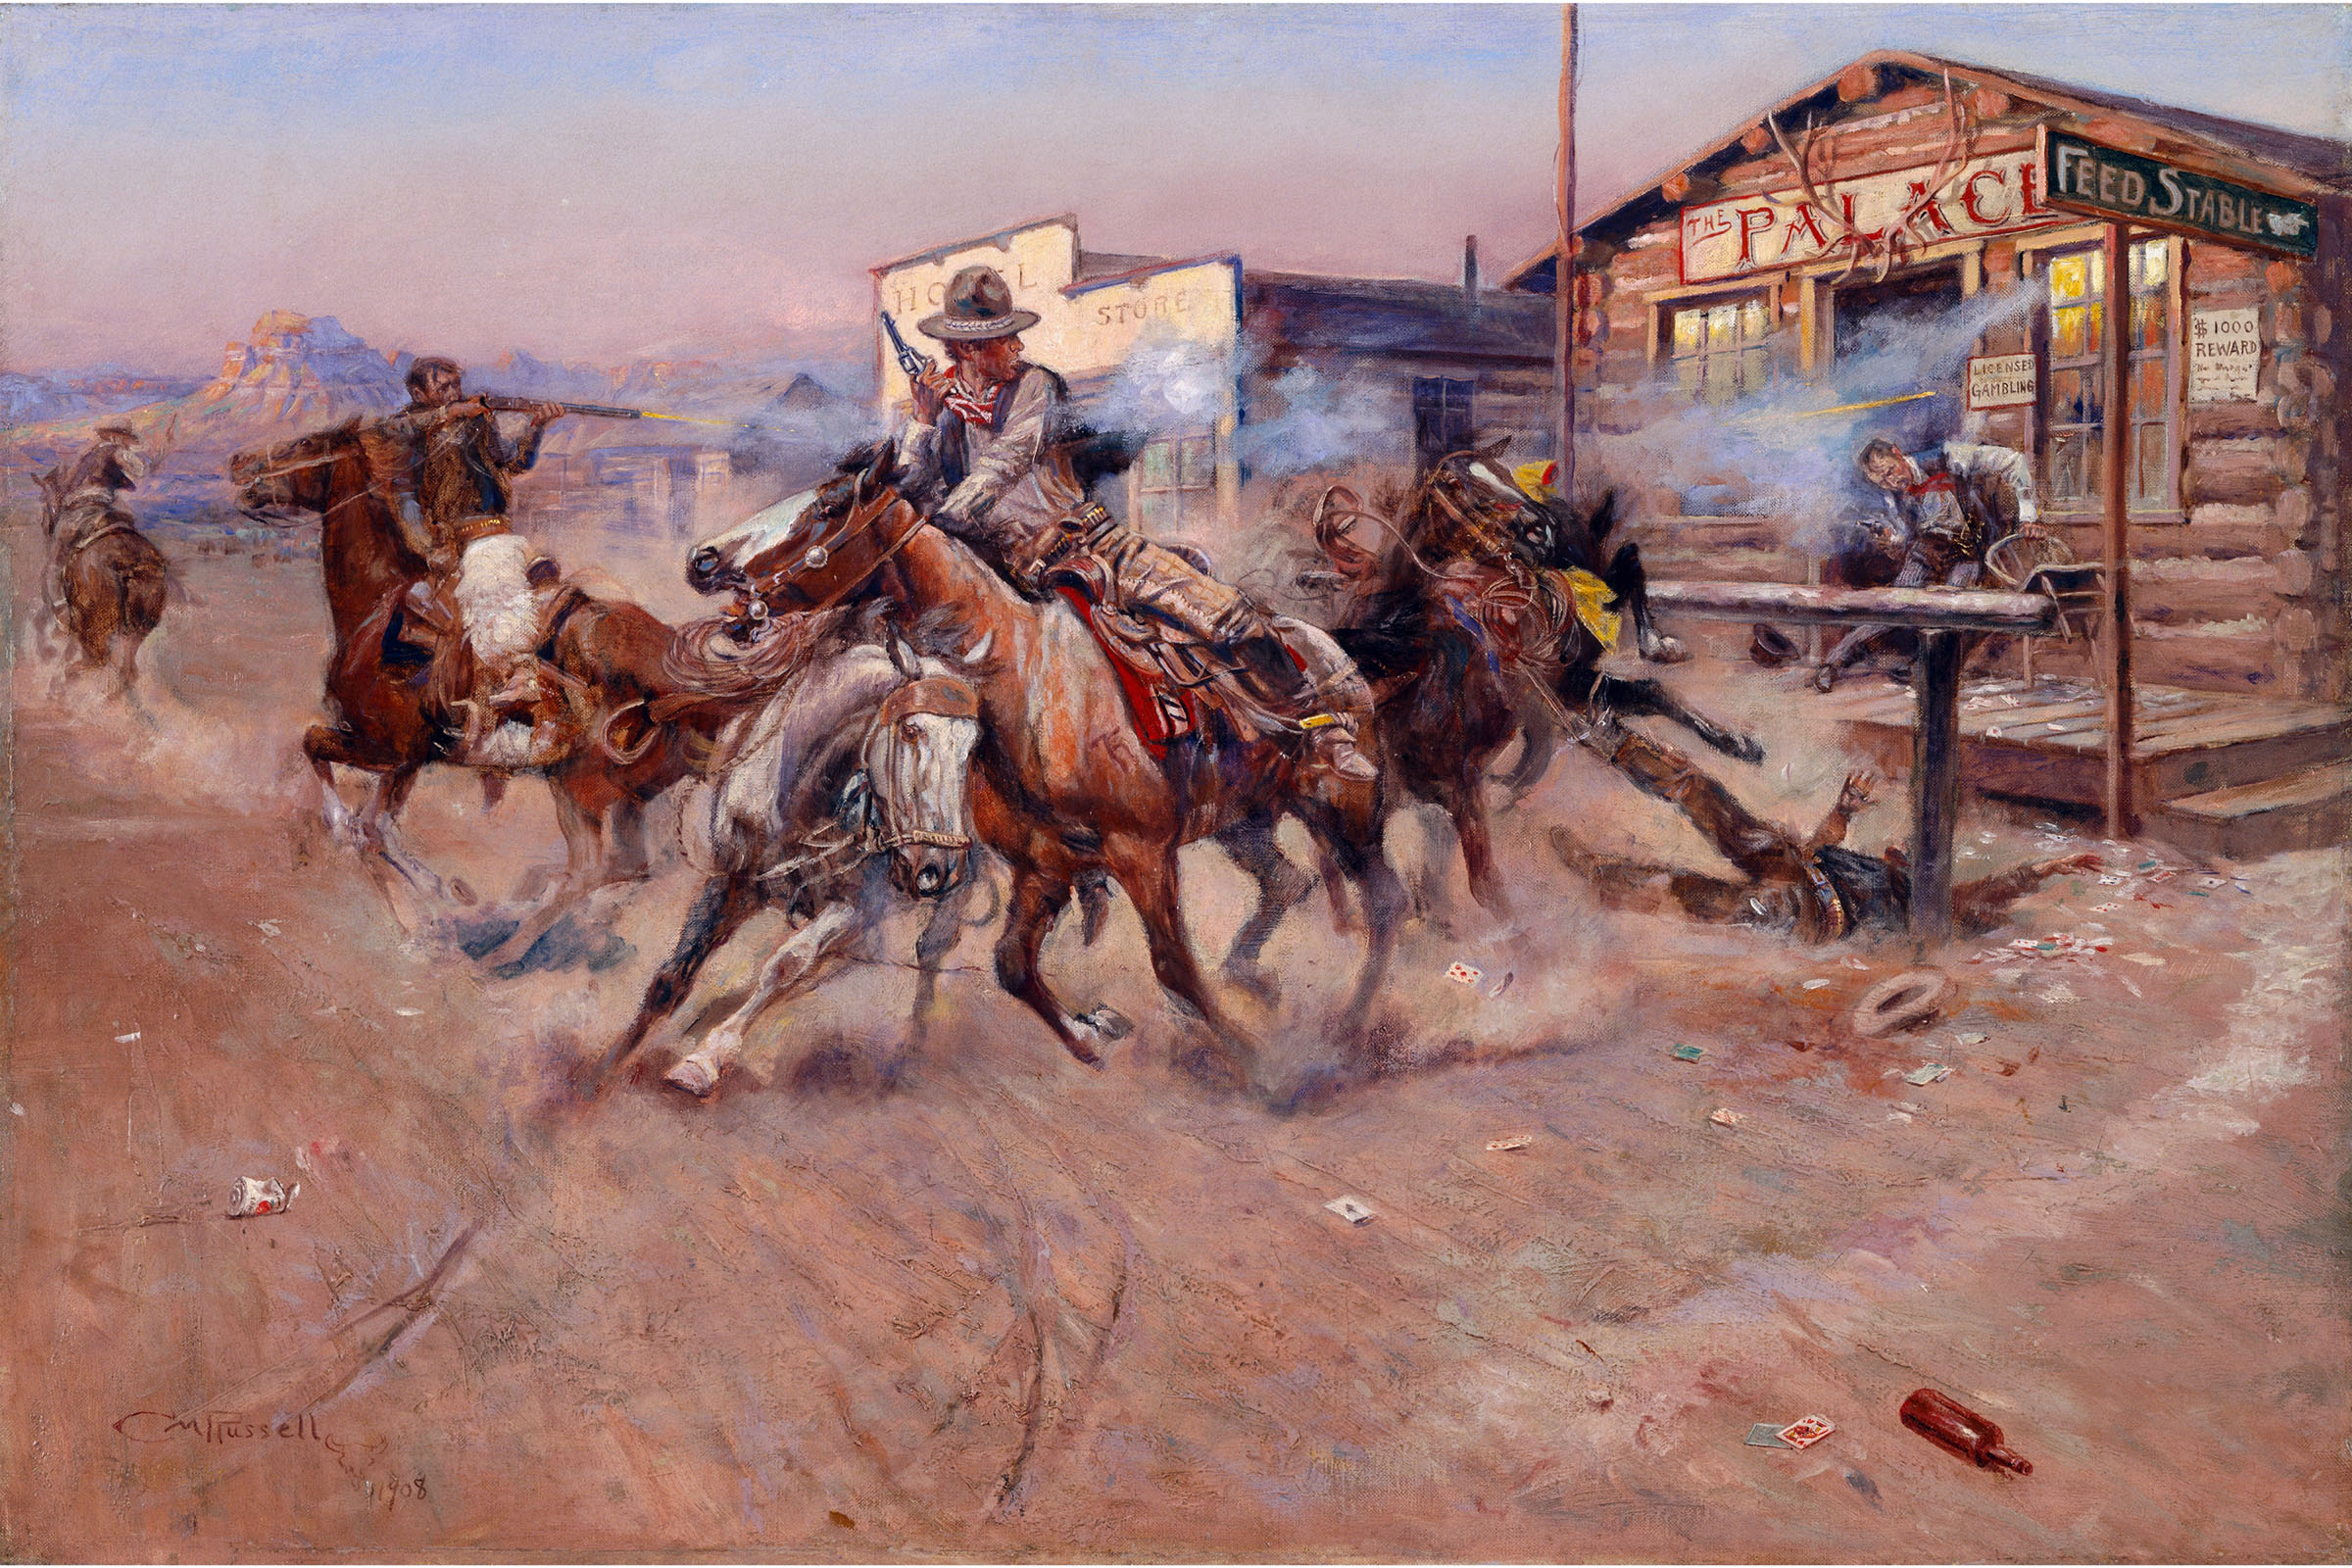 Old American West Wall Decor Charles Marion Russell The Scout Art Print Poster 16x20